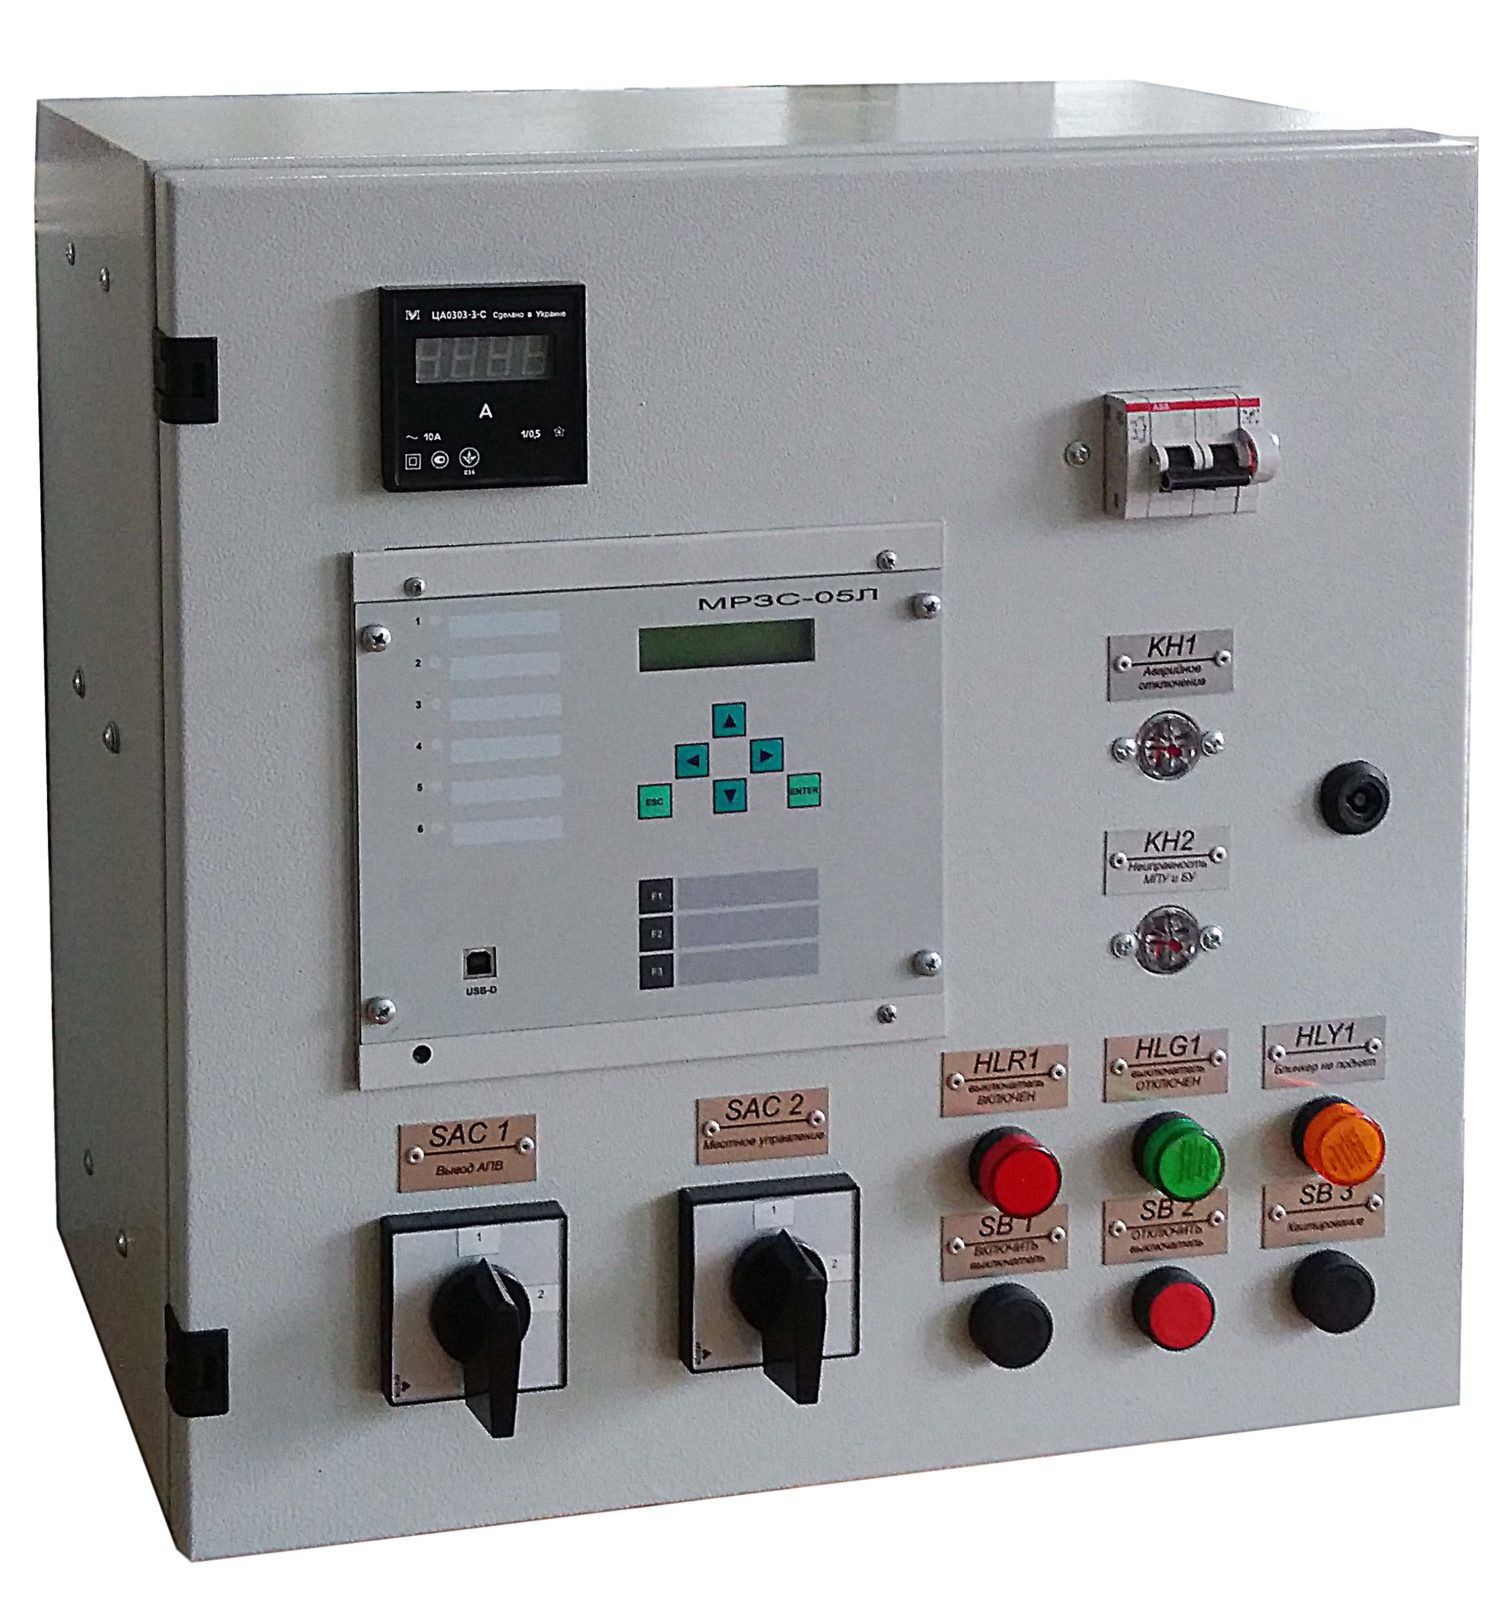 Cabinets of relay protection and automation of series SHUAZ-10